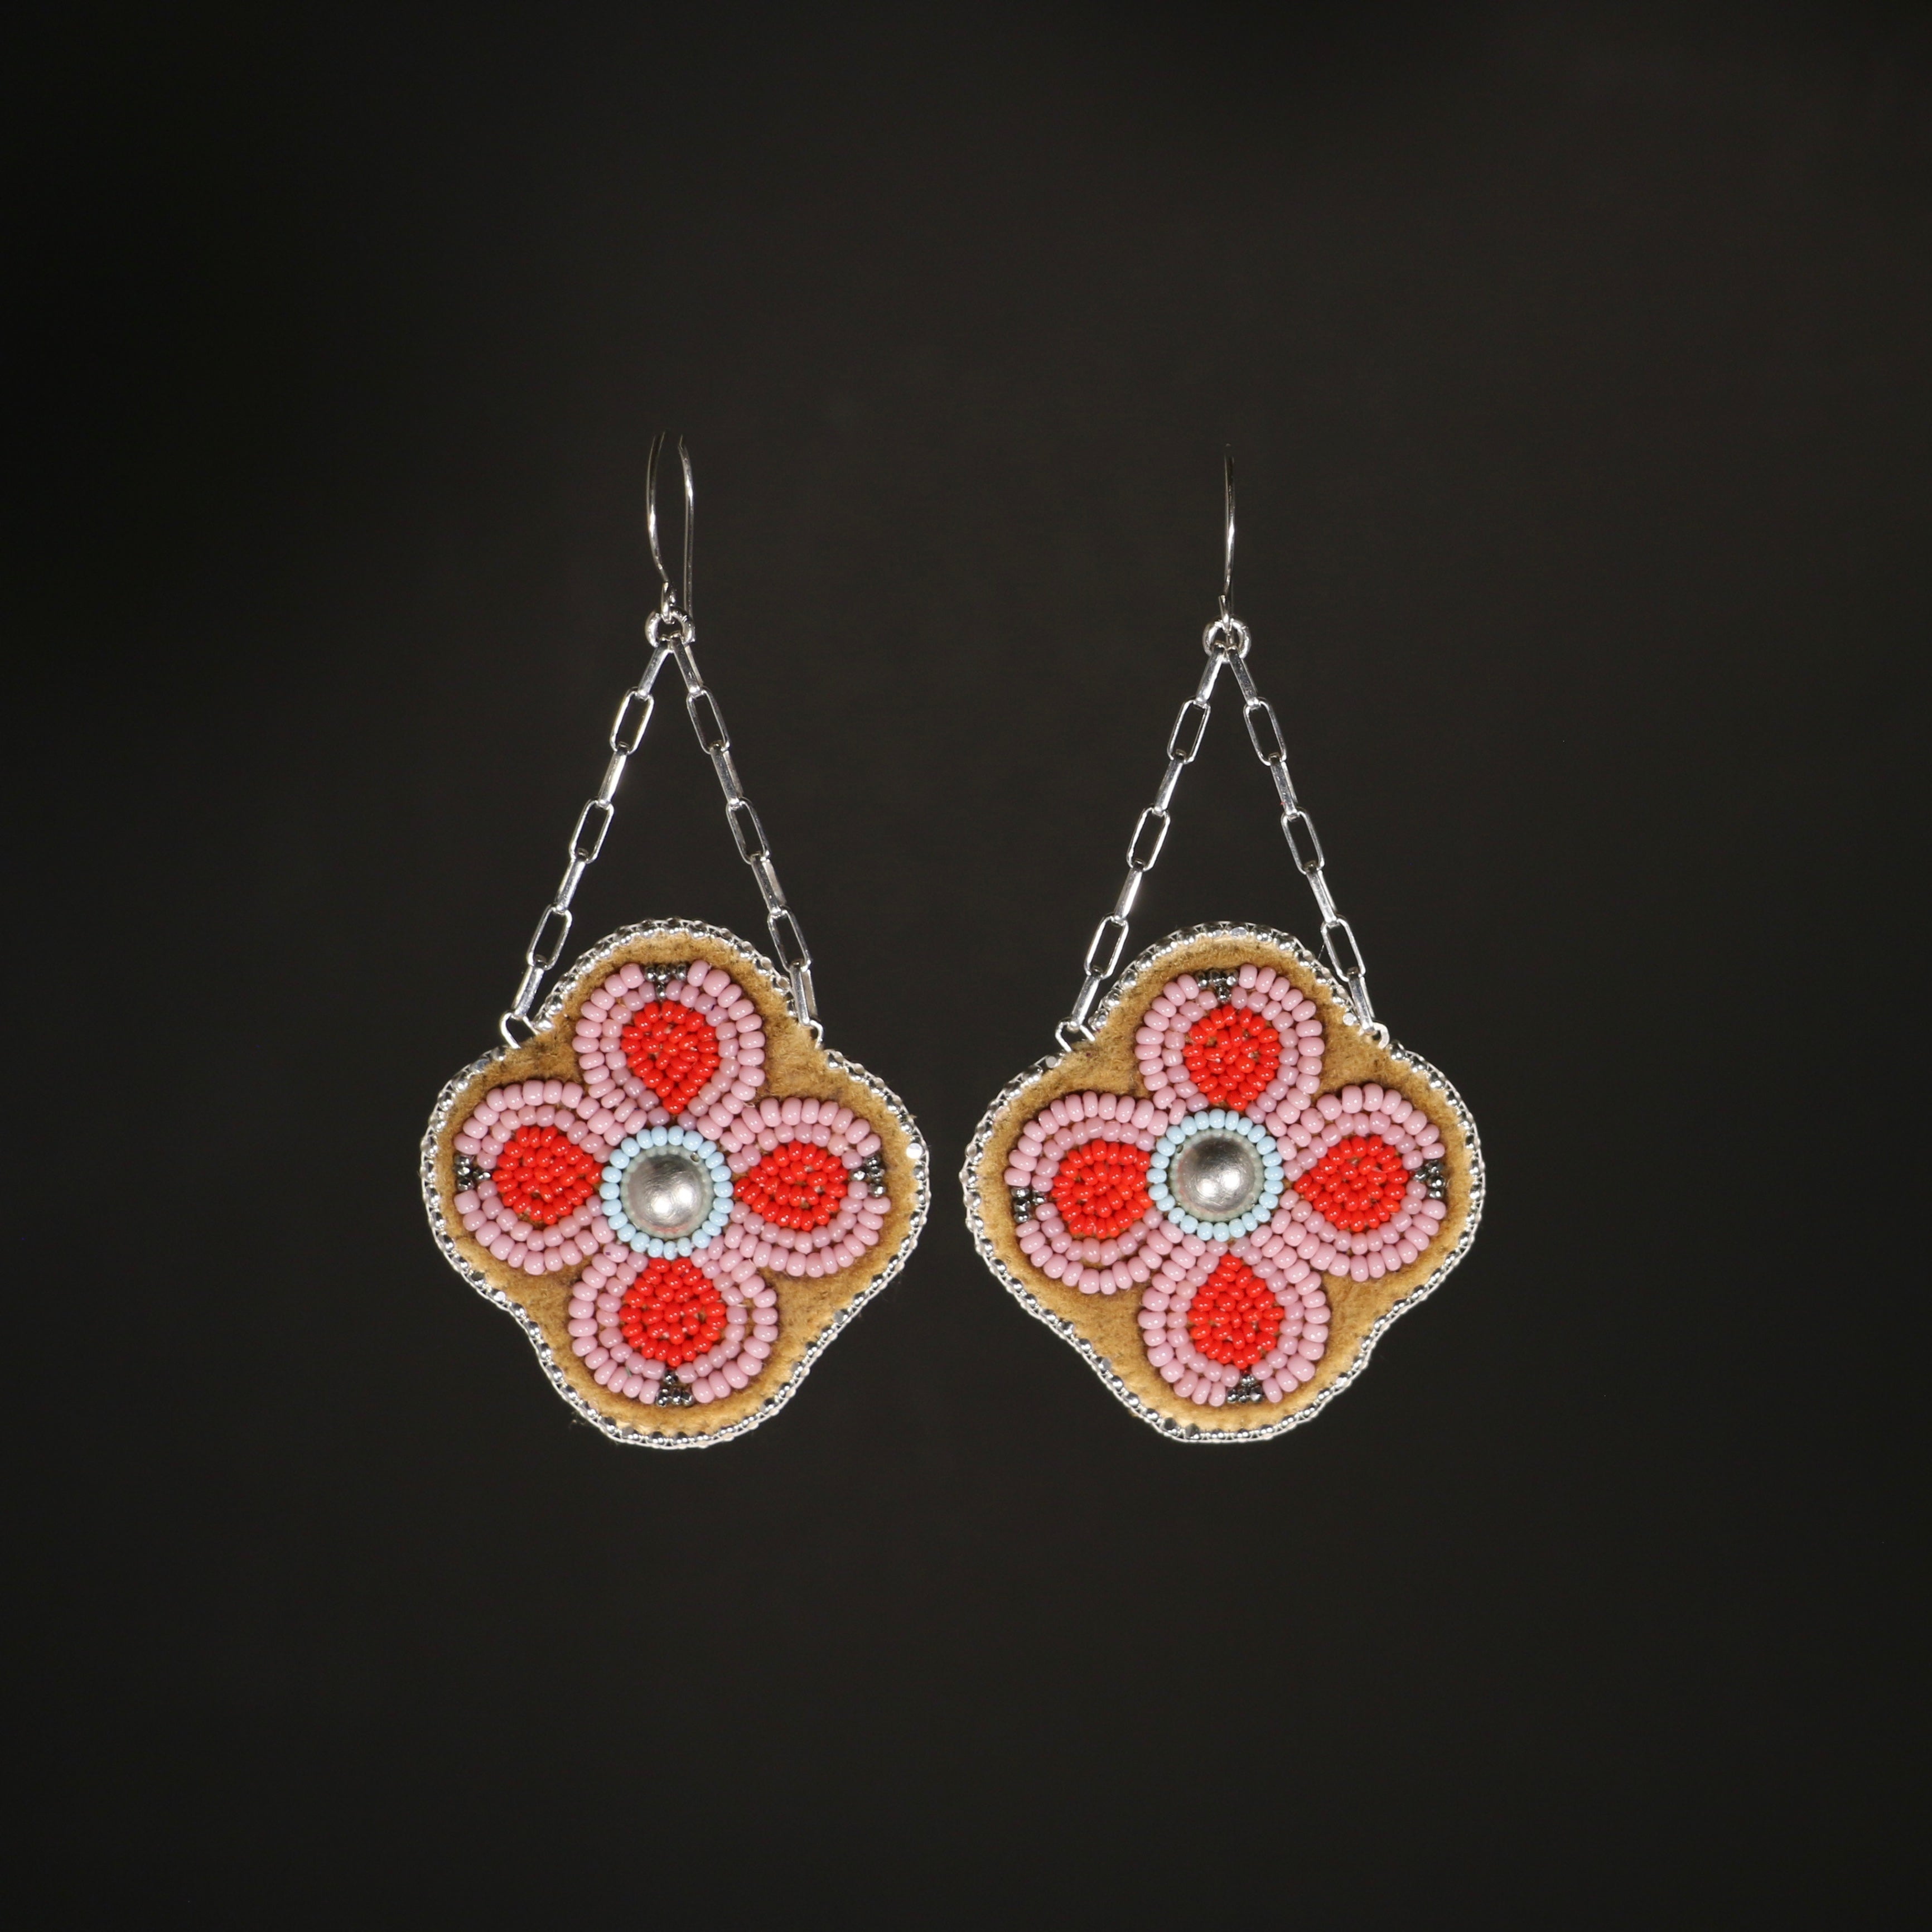 Beaded Floral Earrings - Cheyenne pink and Bright Red